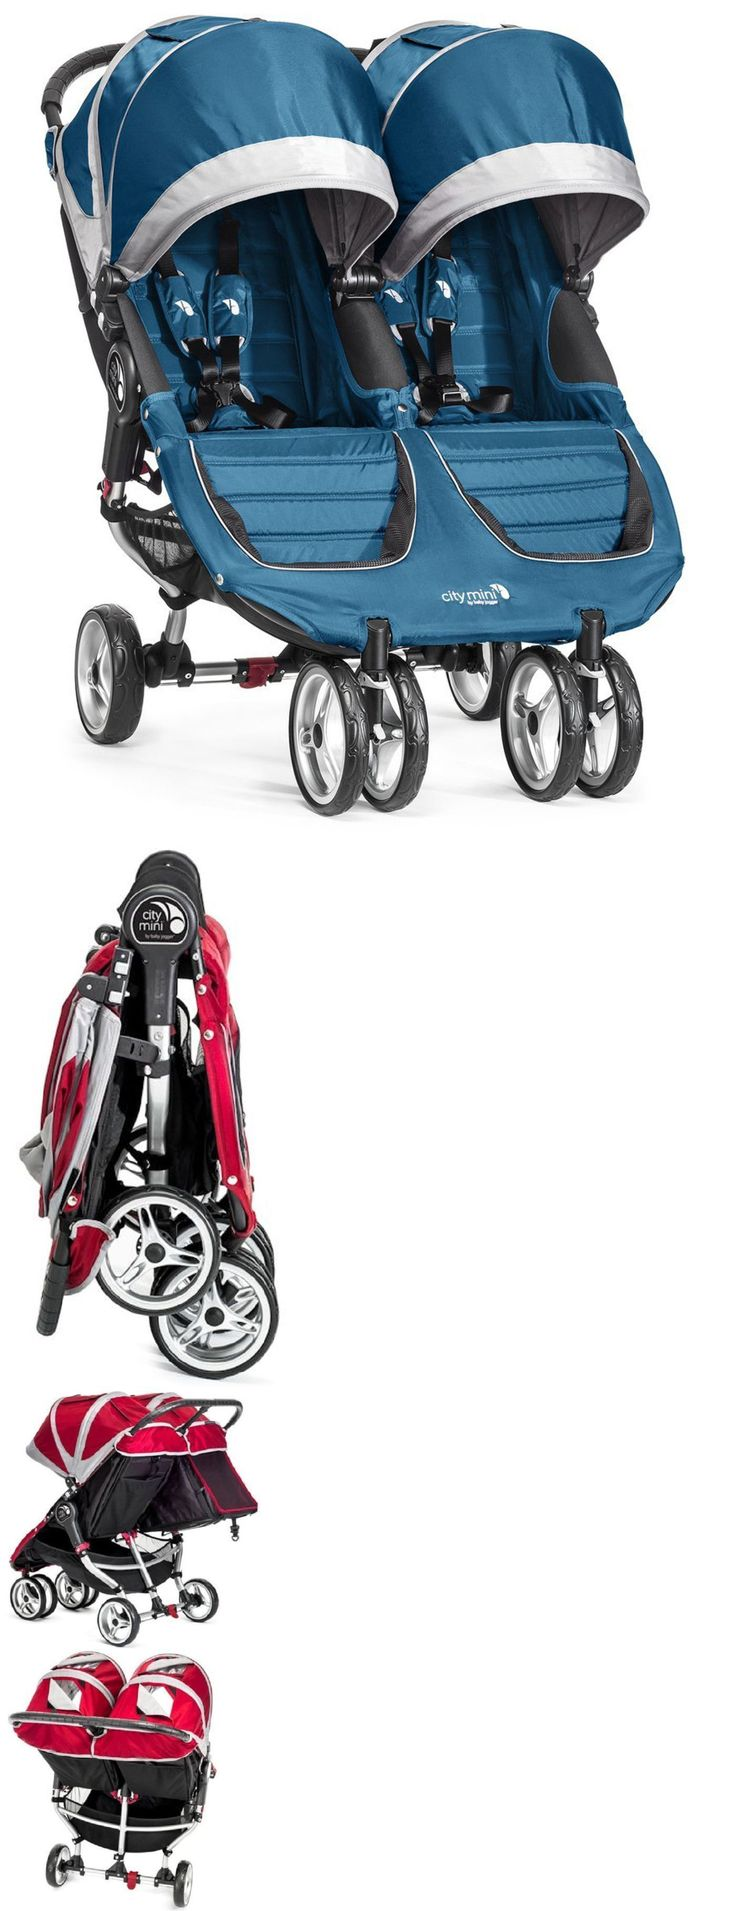 Other Baby Gear 100224: Baby Jogger City Mini Double Twin Stroller Teal Gray New 2016 -> BUY IT NOW ONLY: $404.99 on eBay!